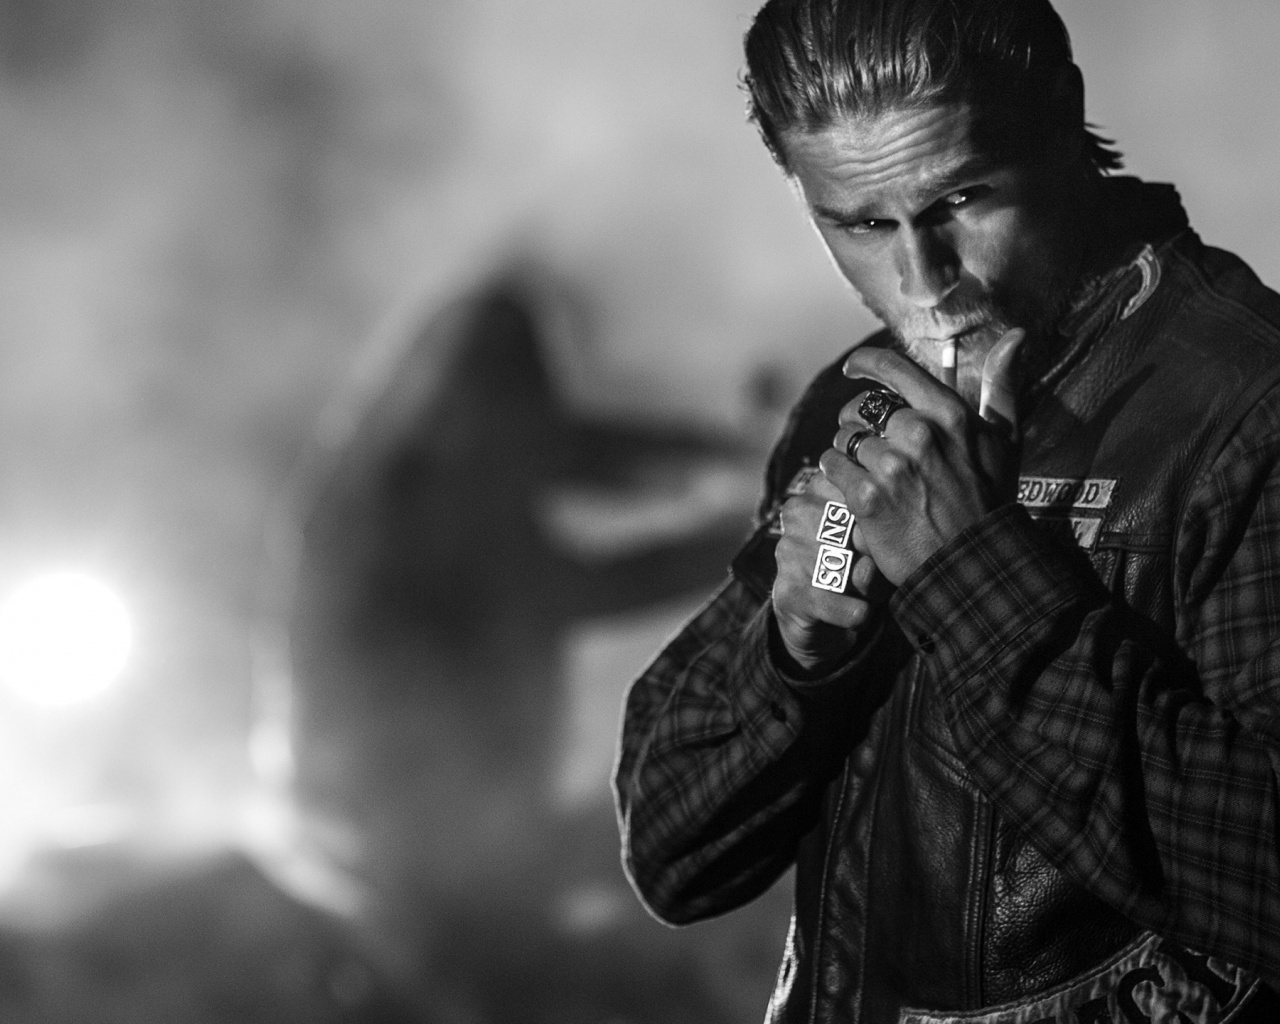 Hd Charlie Hunnam Wallpapers: 1280x1024 Sons Of Anarchy Charlie Hunnam Desktop PC And